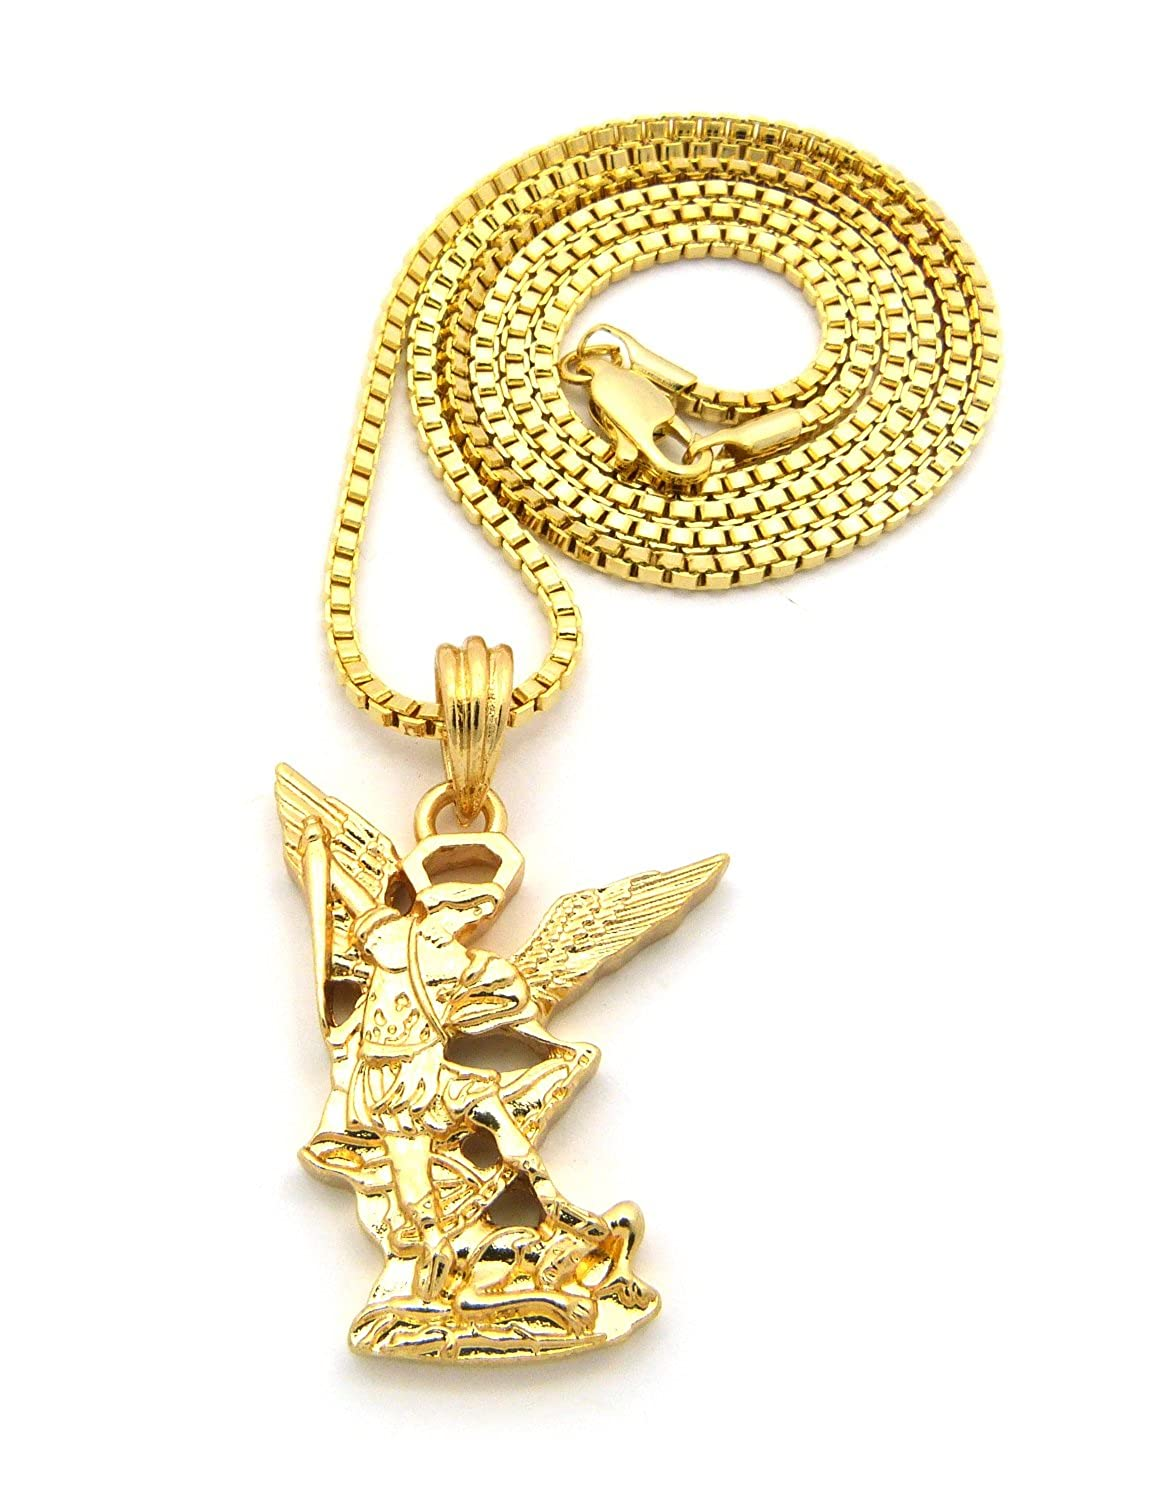 Amazon st michael the archangel pendant with 2mm box chain amazon st michael the archangel pendant with 2mm box chain necklace gold tone 24 jewelry aloadofball Gallery